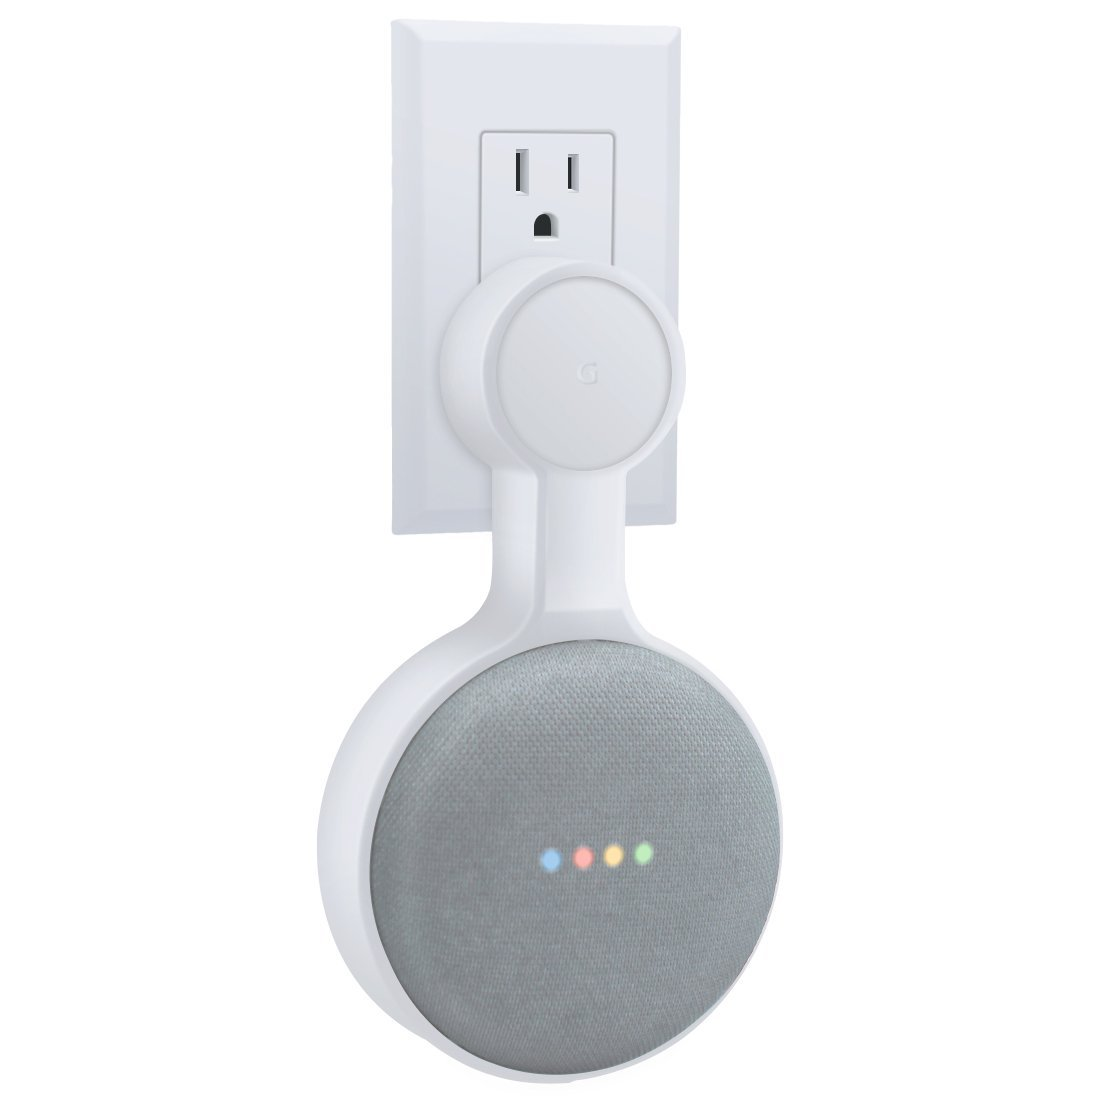 AMORTEK Outlet Wall Mount Holder for Google Home Mini, A Space-Saving Accessories for Google Home Mini Voice Assistant